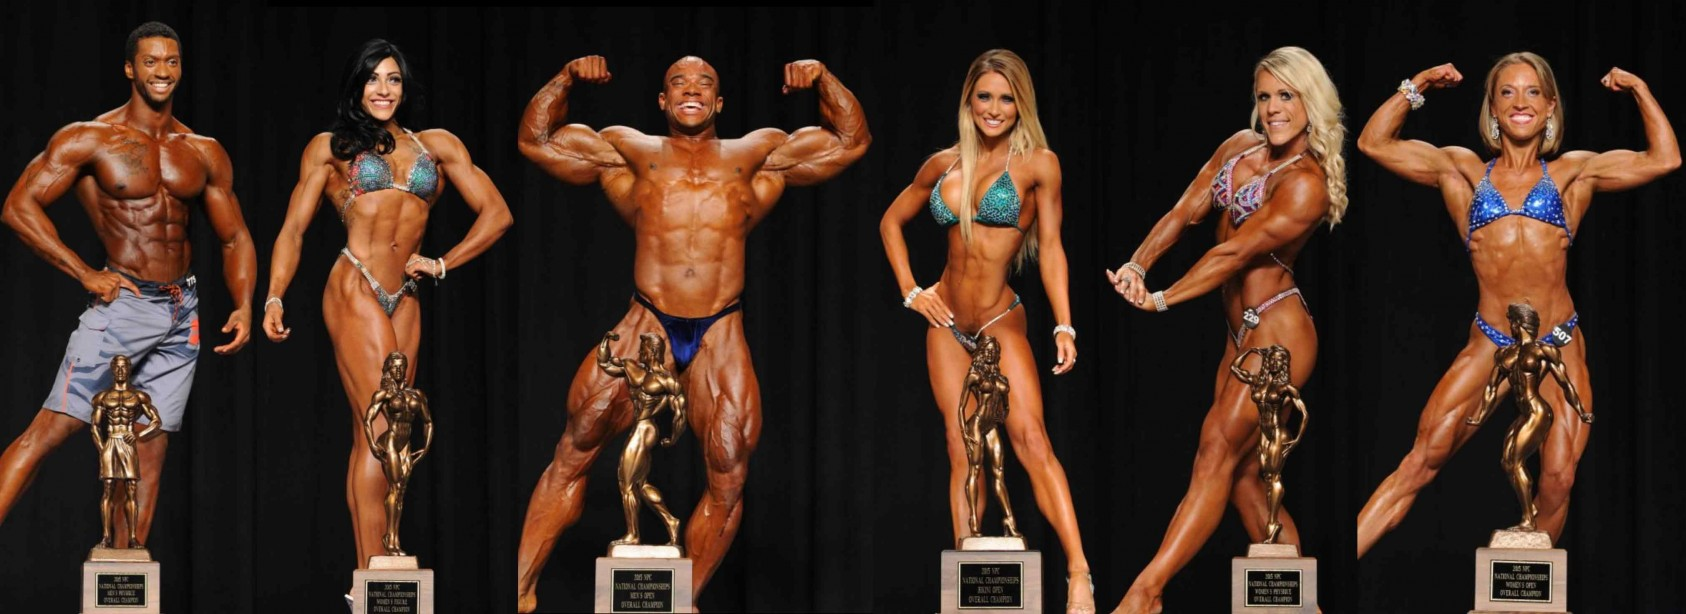 2015 NPC National Championships Results